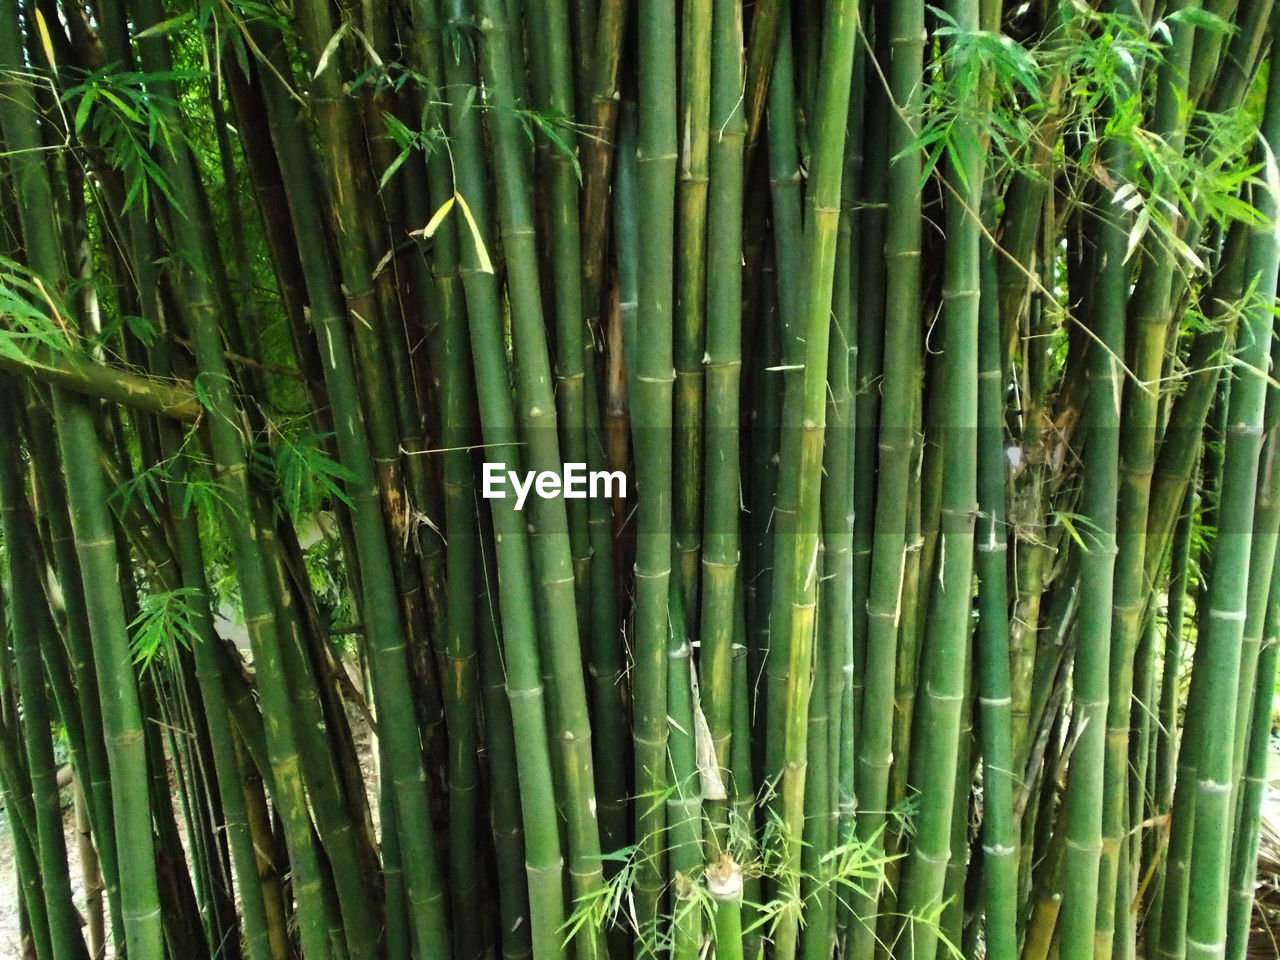 plant, growth, green color, bamboo - plant, bamboo, bamboo grove, land, nature, beauty in nature, no people, day, backgrounds, full frame, tranquility, forest, outdoors, field, close-up, tree, green